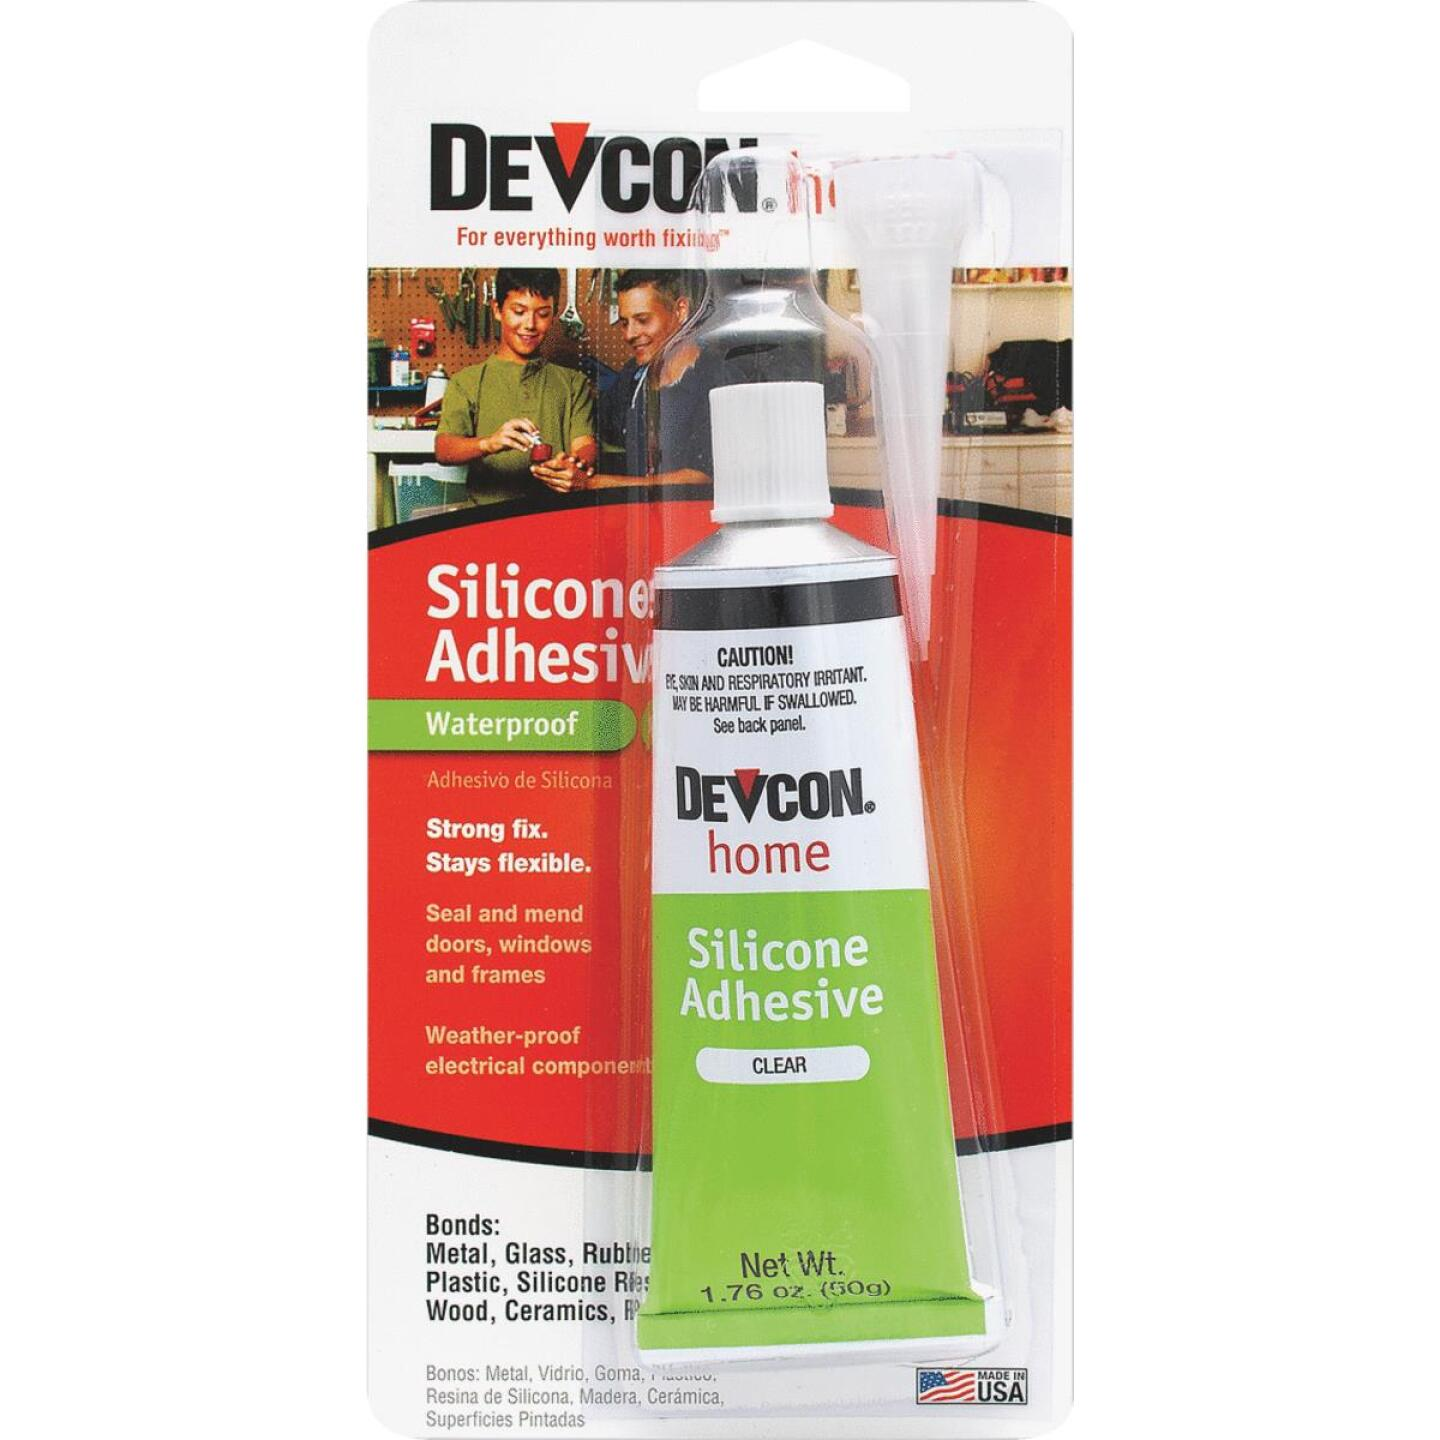 Devcon 1.76 Oz. Clear Silicone Adhesive Image 1